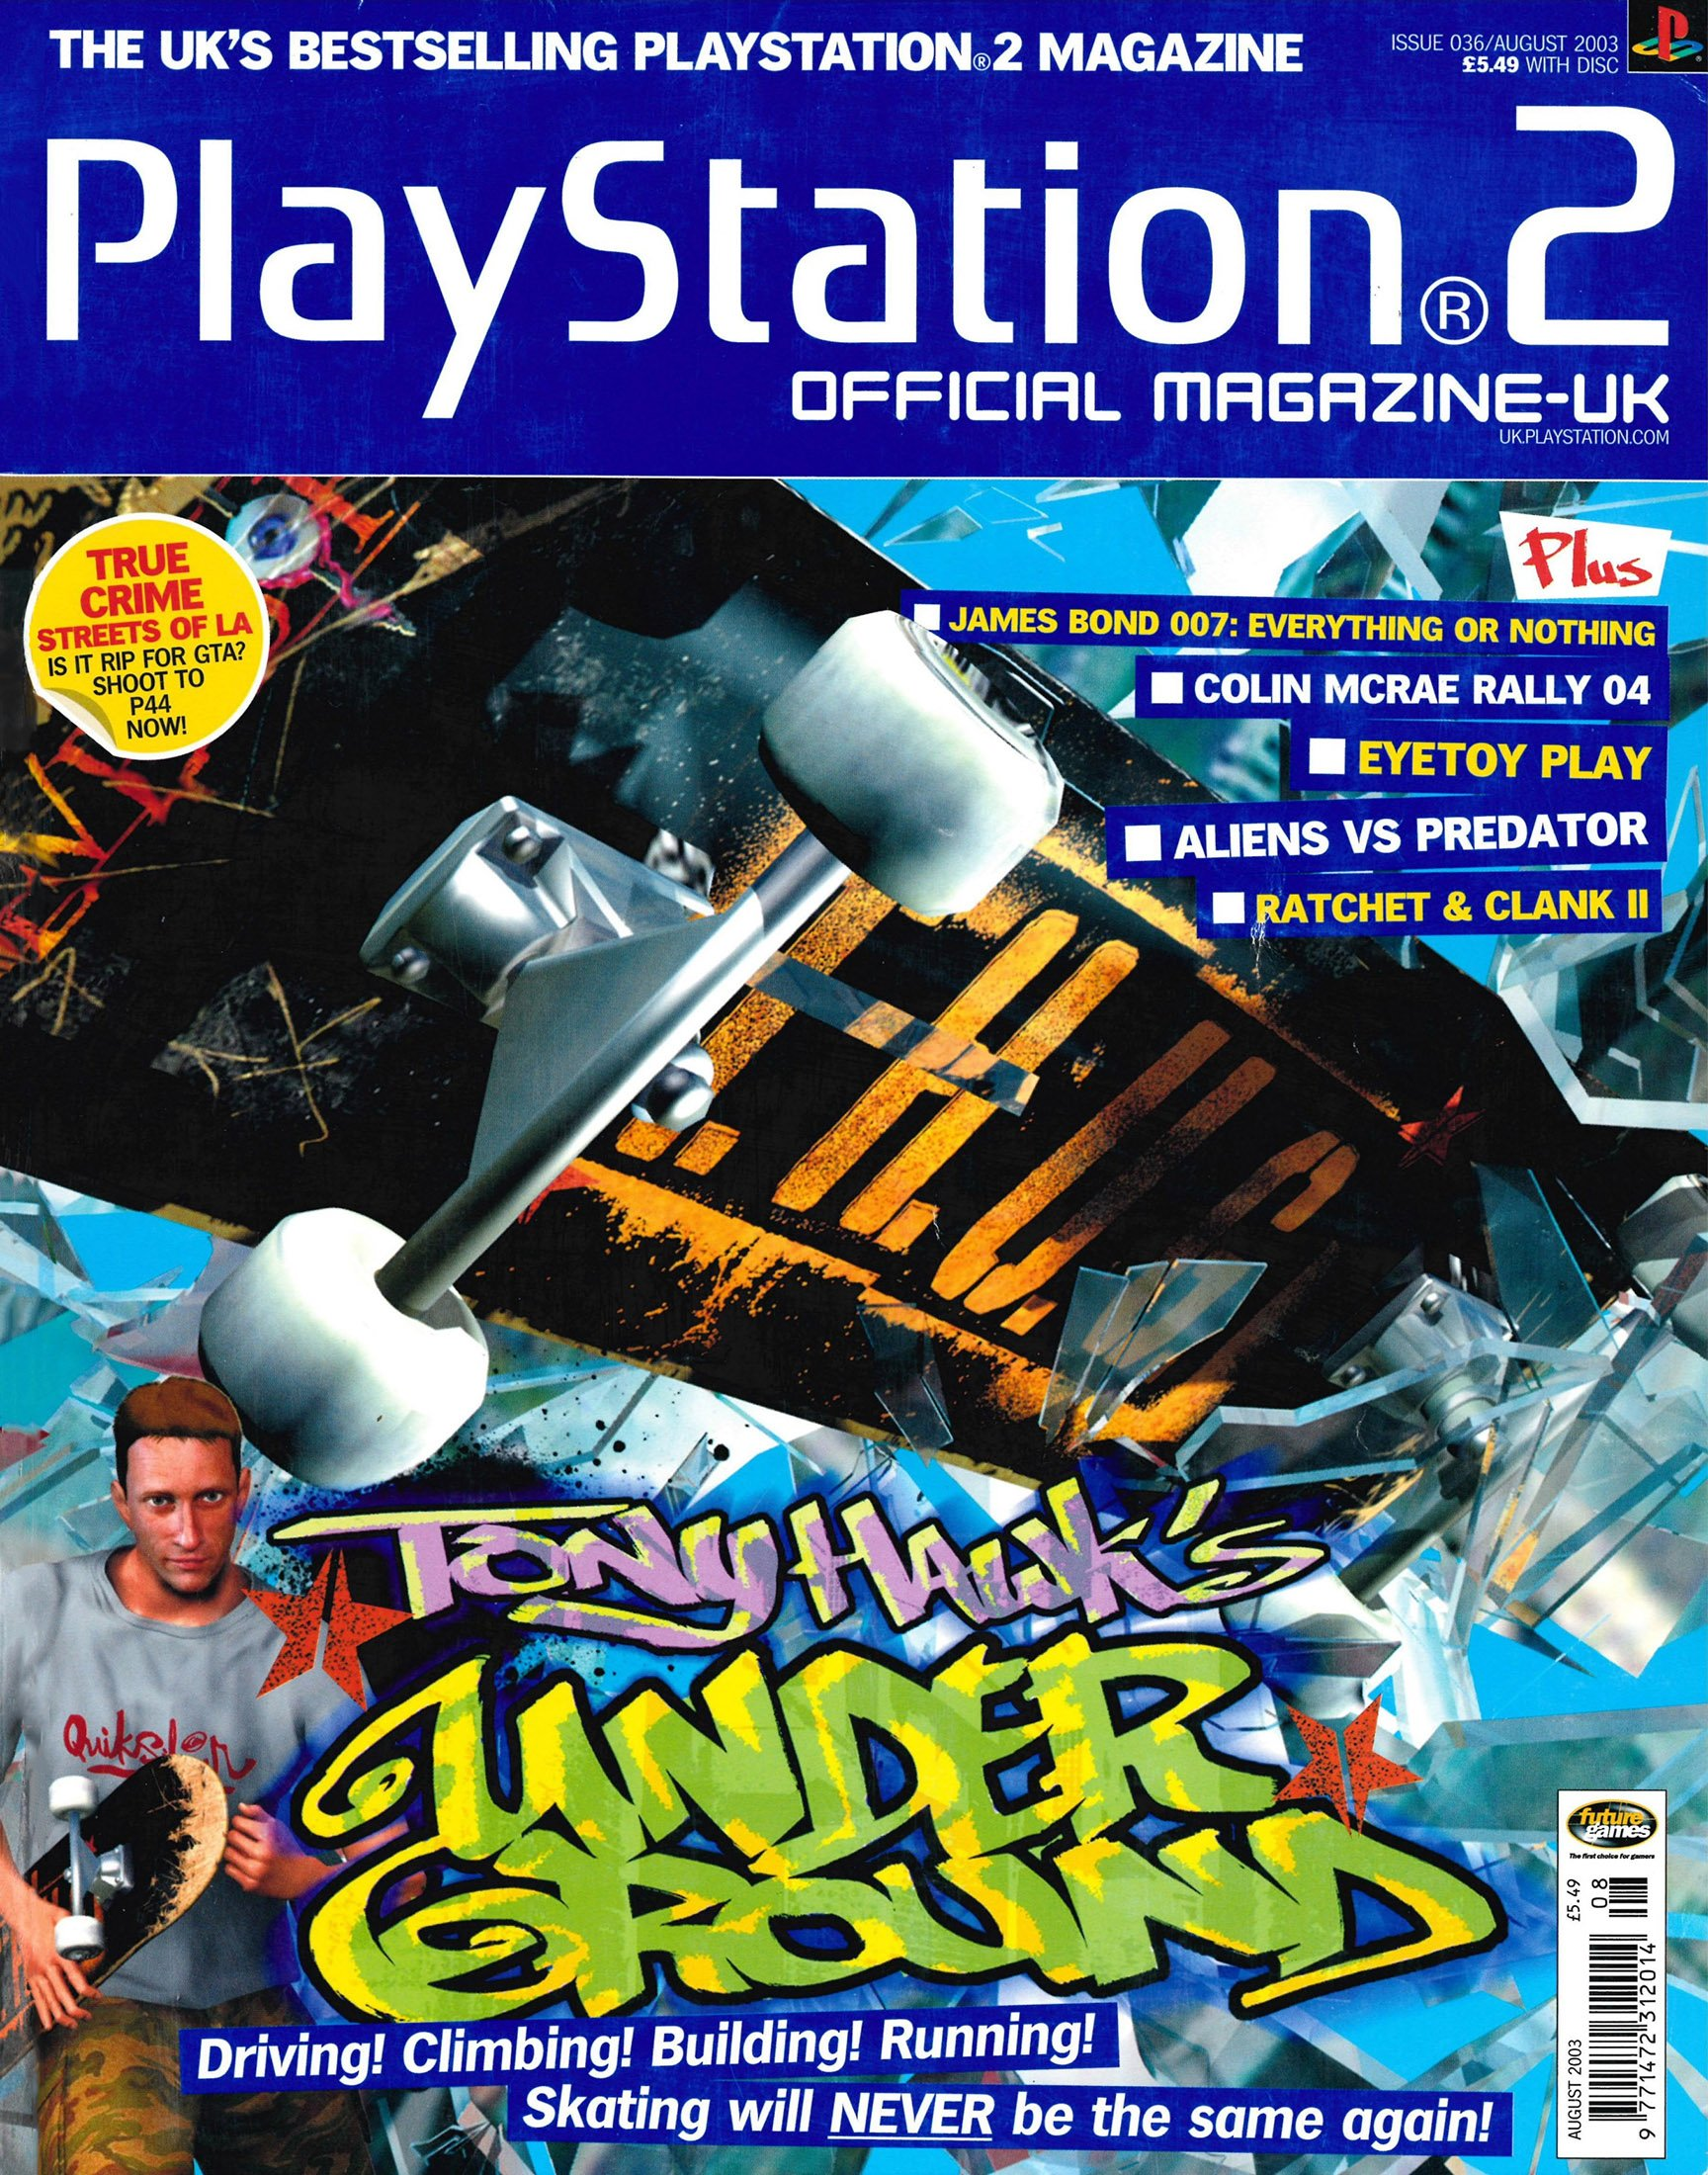 Official Playstation 2 Magazine UK 036 (August 2003)